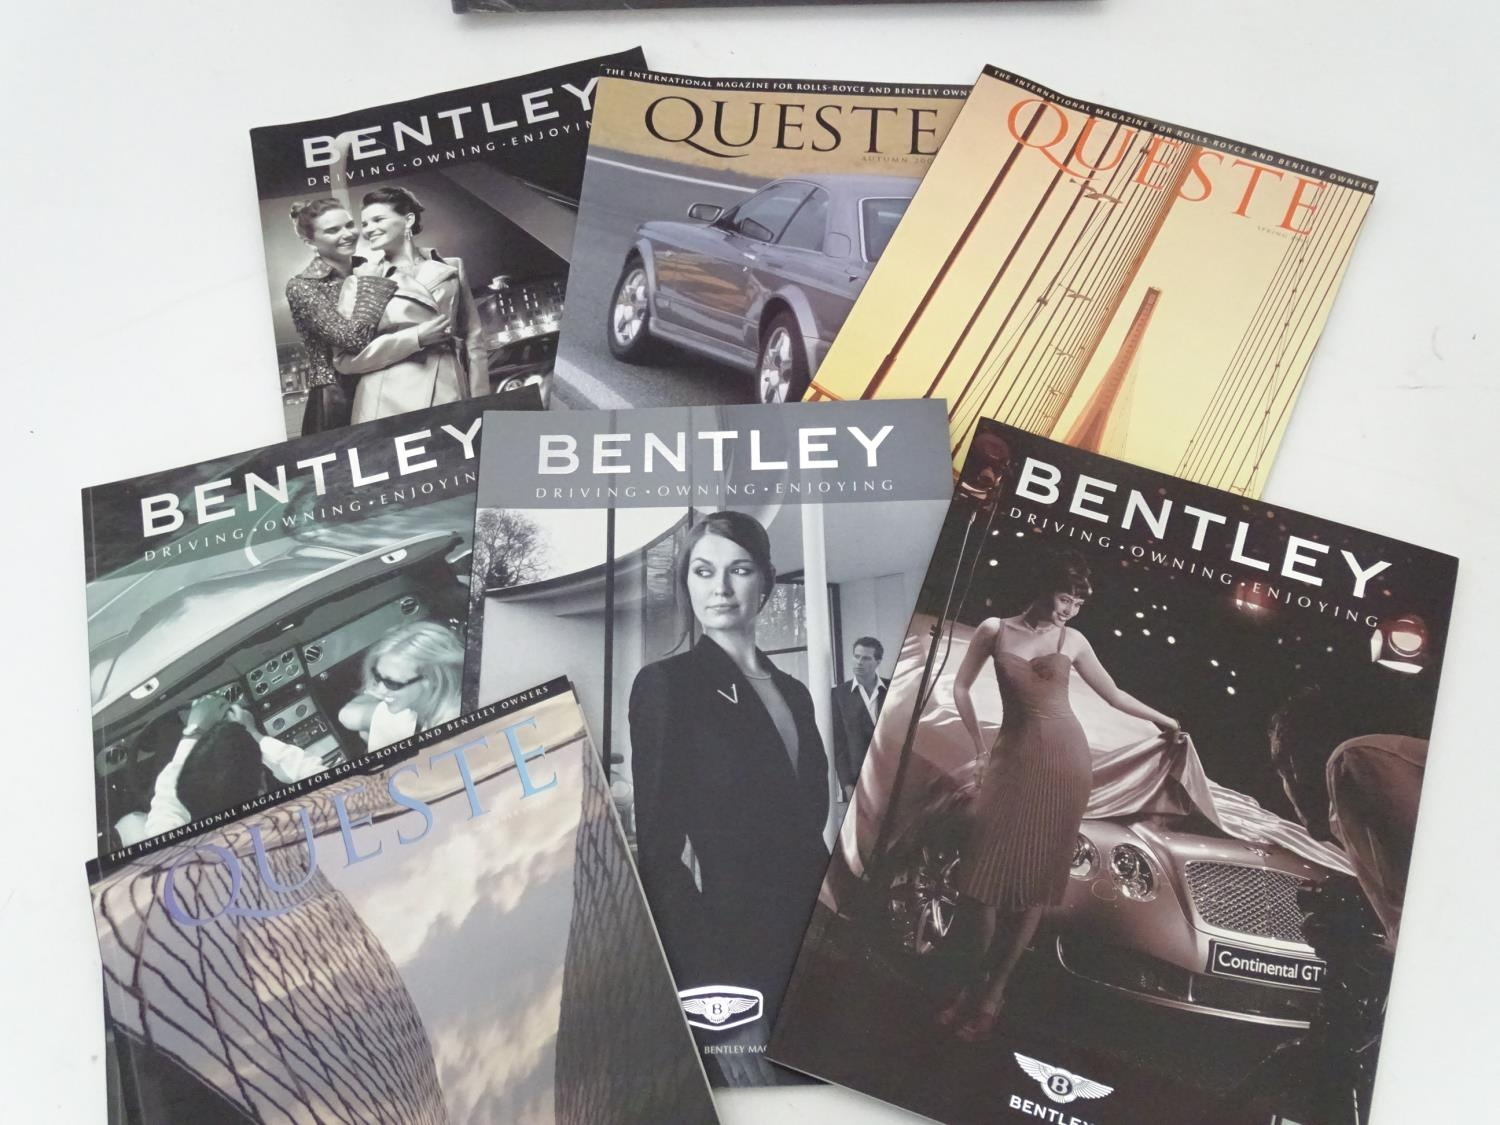 A leather folder embossed with the Bentley car logo. Together with some Bentley magazines and a book - Image 5 of 6